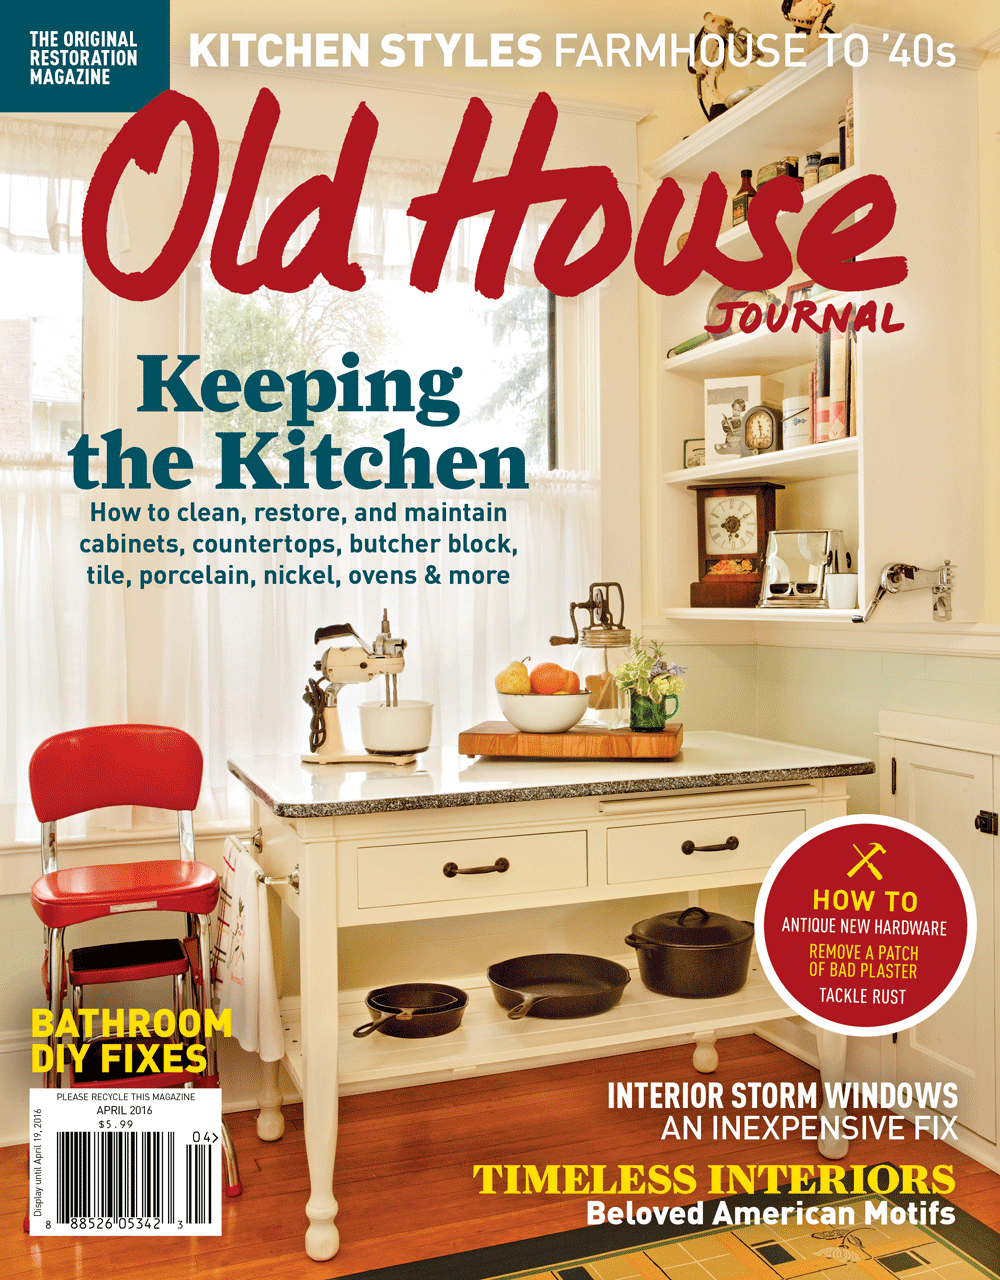 Old House Journal Covers by Megan Hillman